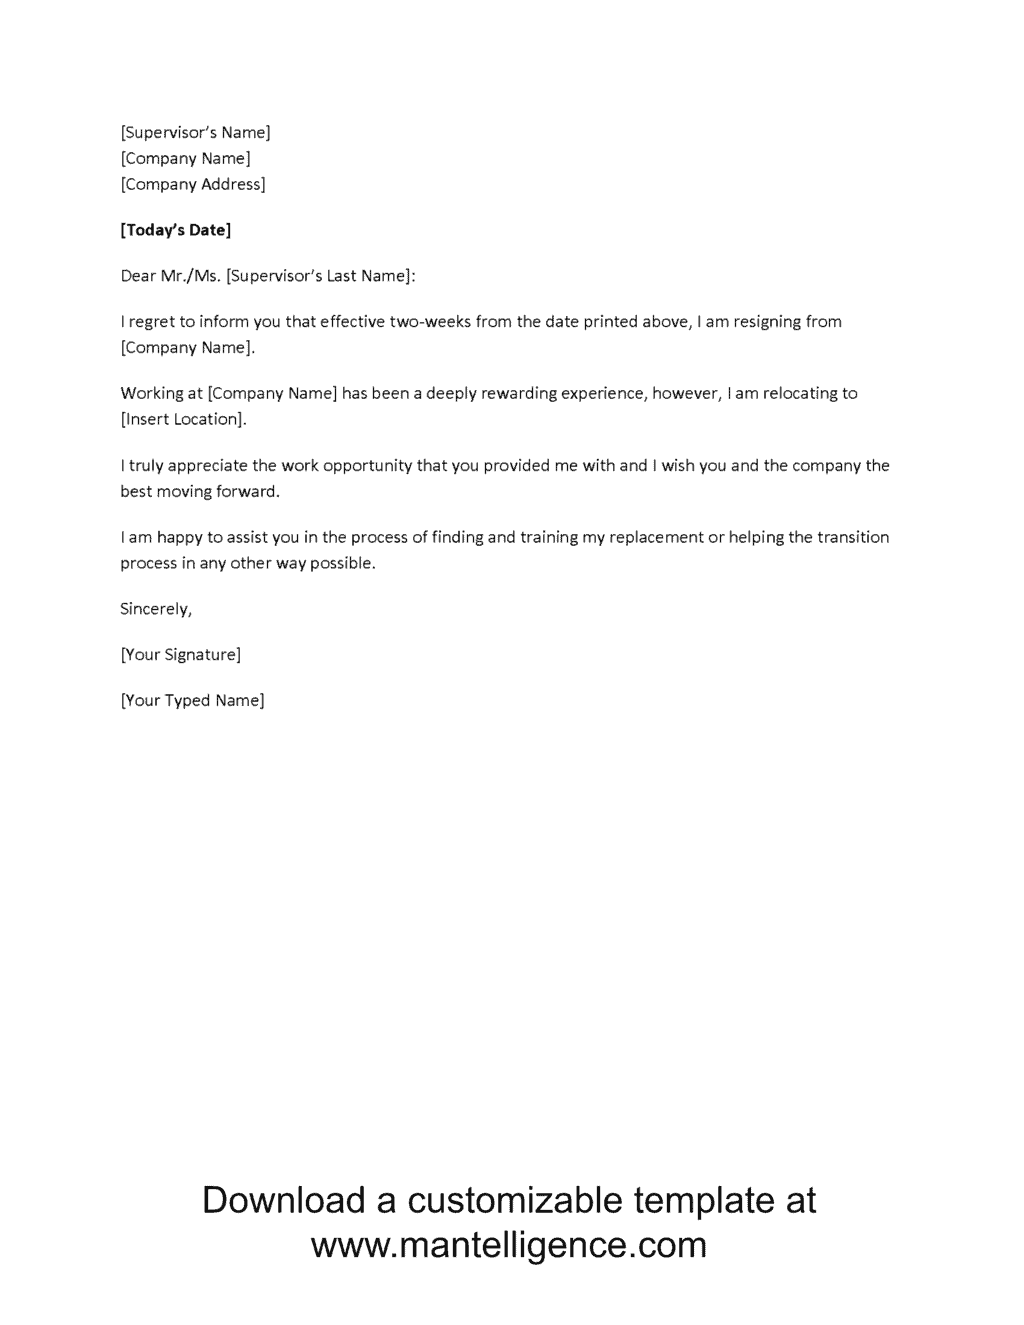 Two Weeks Notice Letter Template - [ src ]